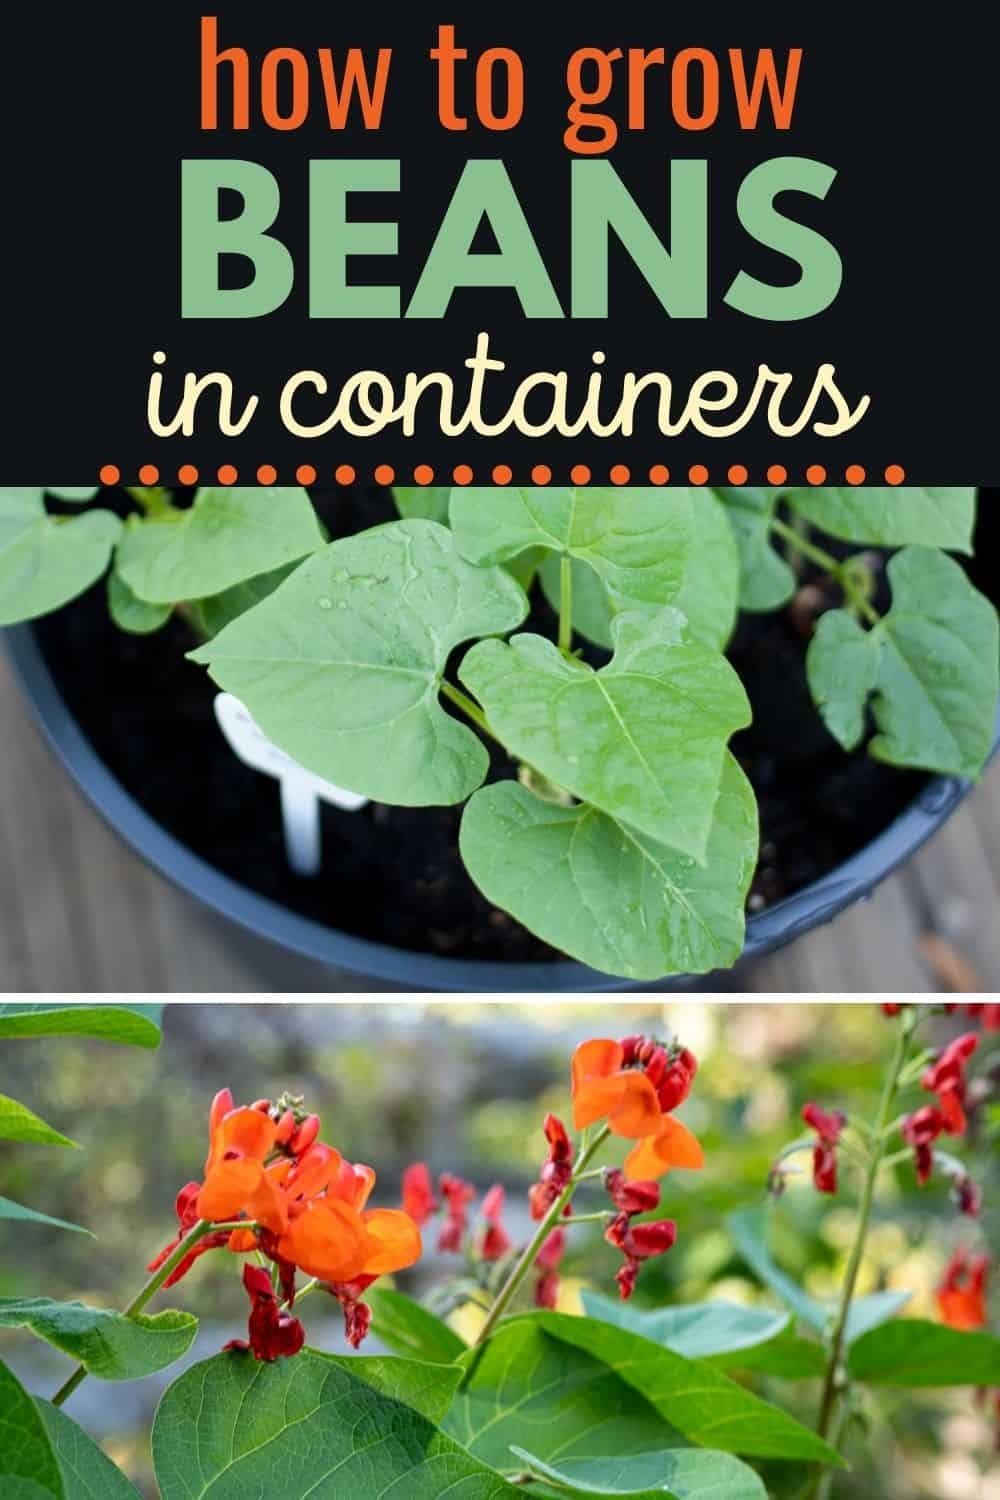 How to grow beans in containers